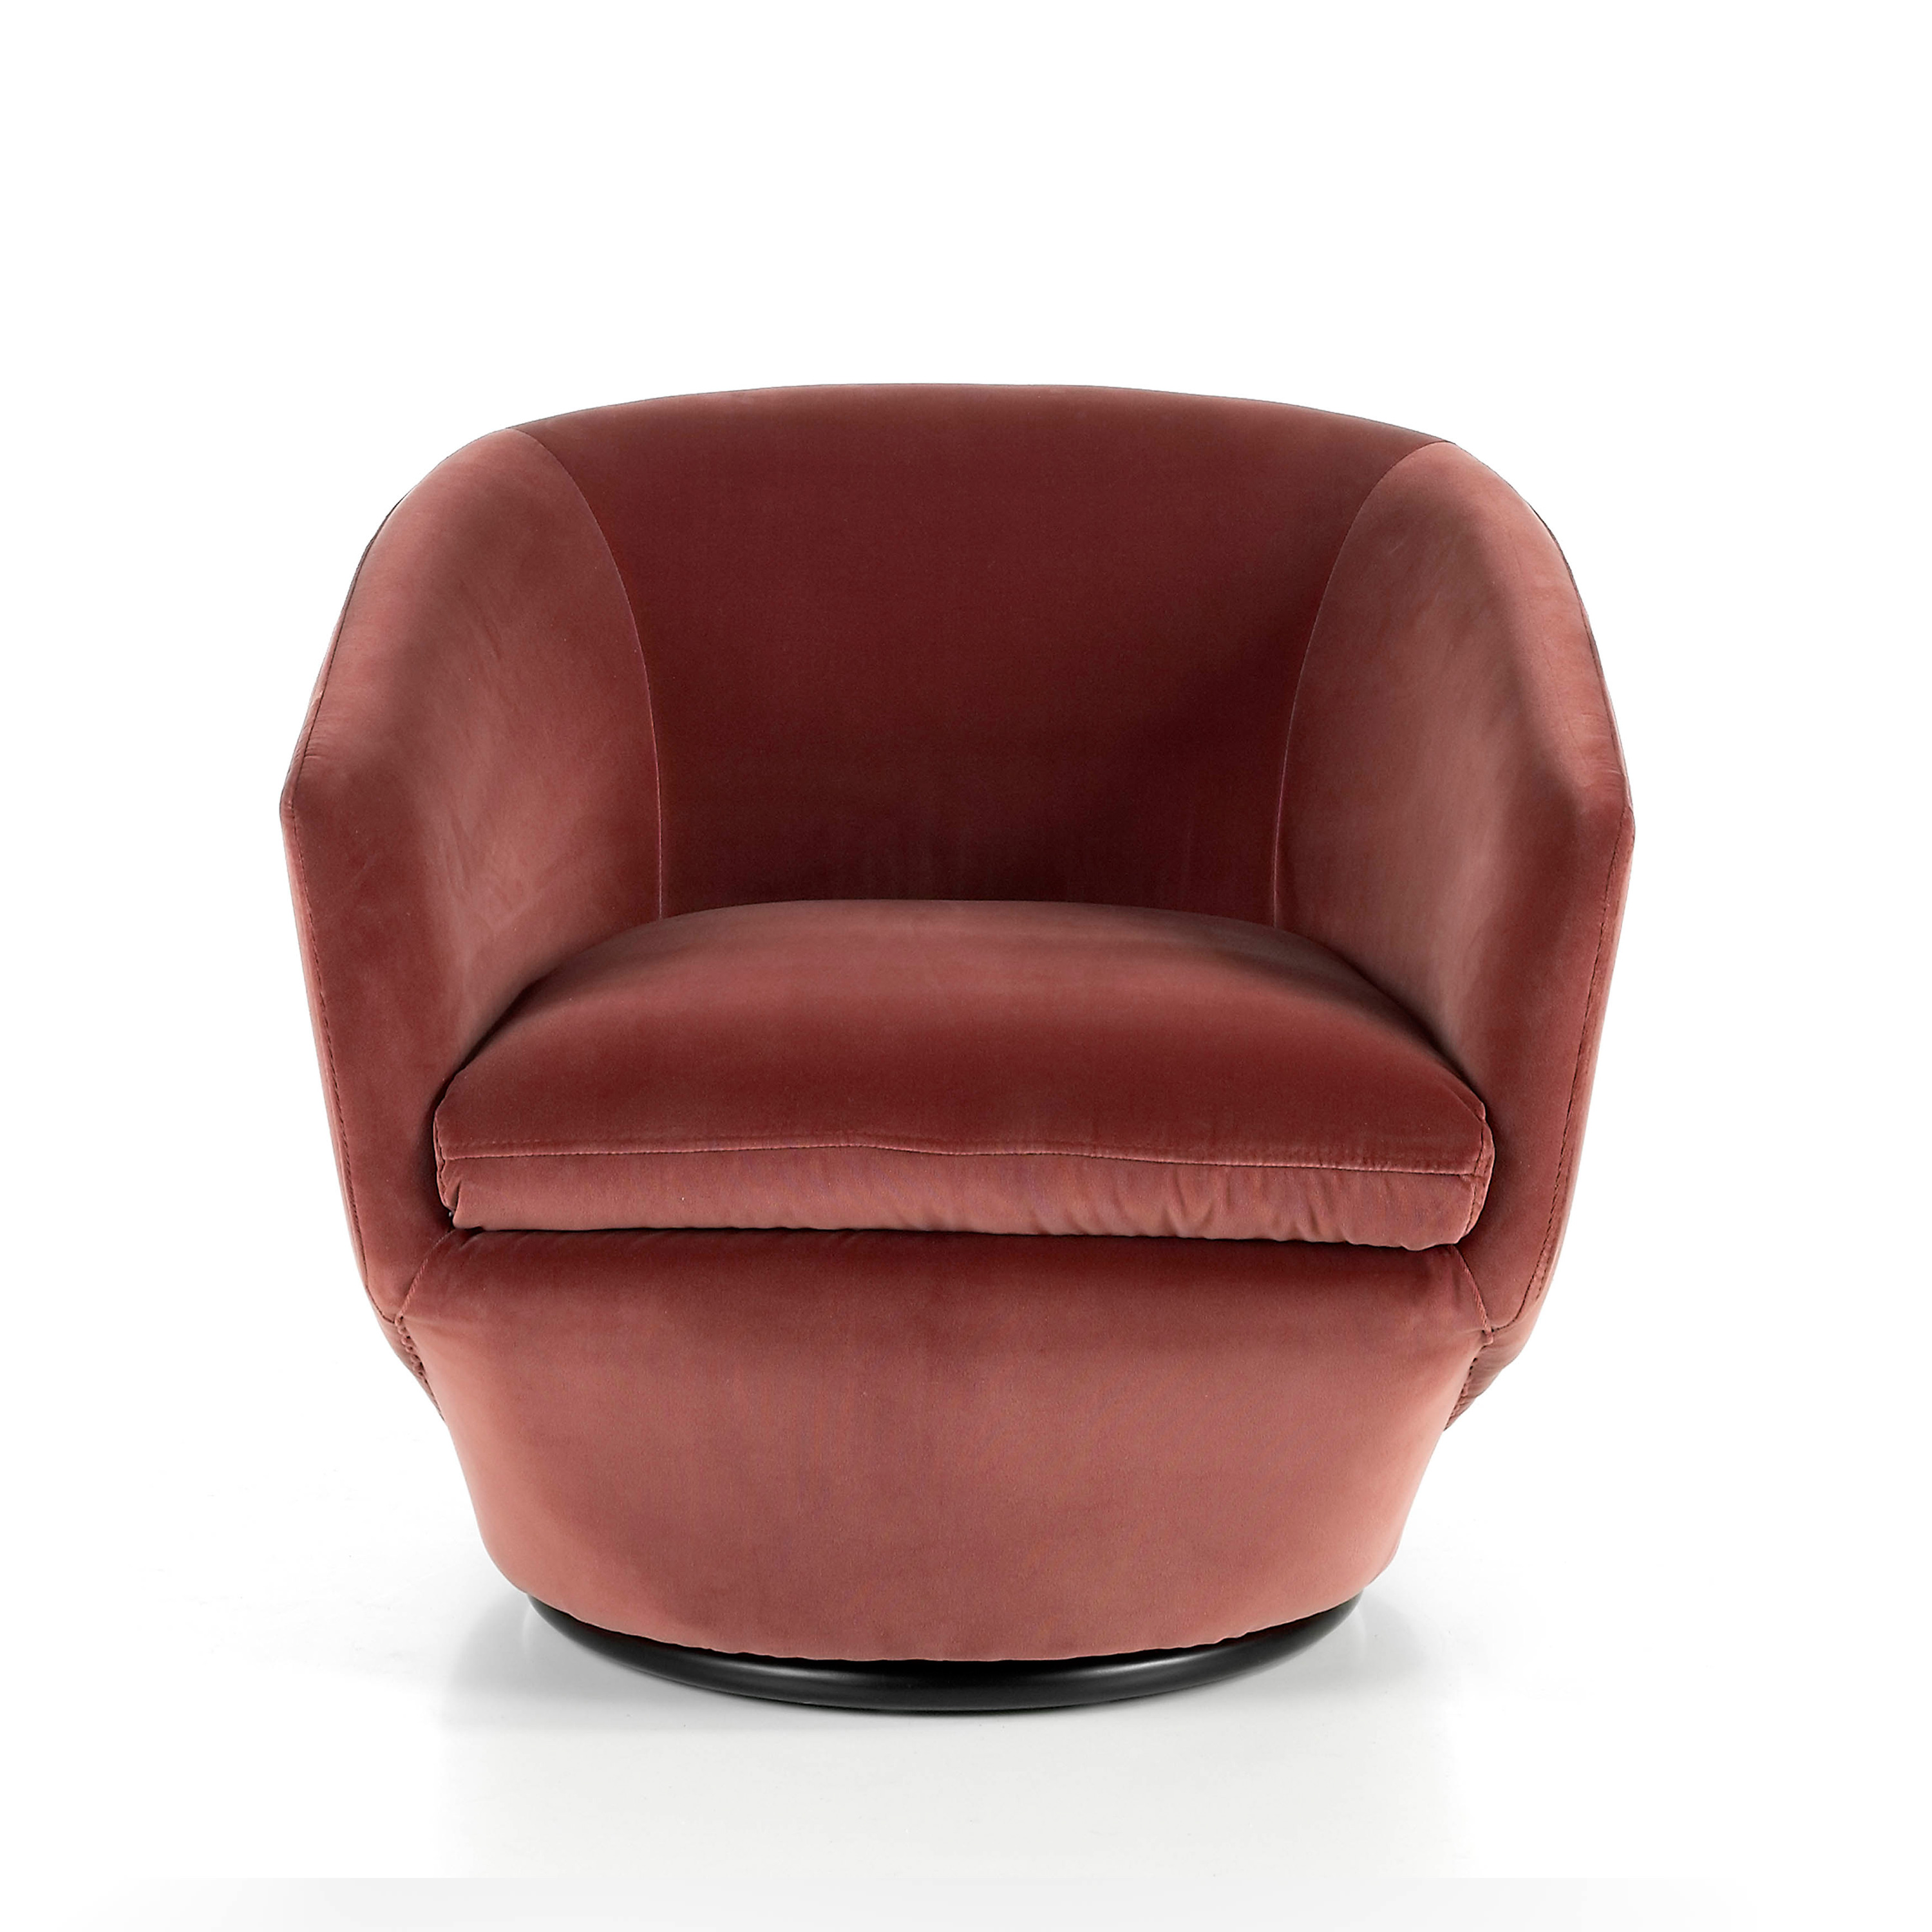 Swivel upholstered armchair in velvet effect fabric